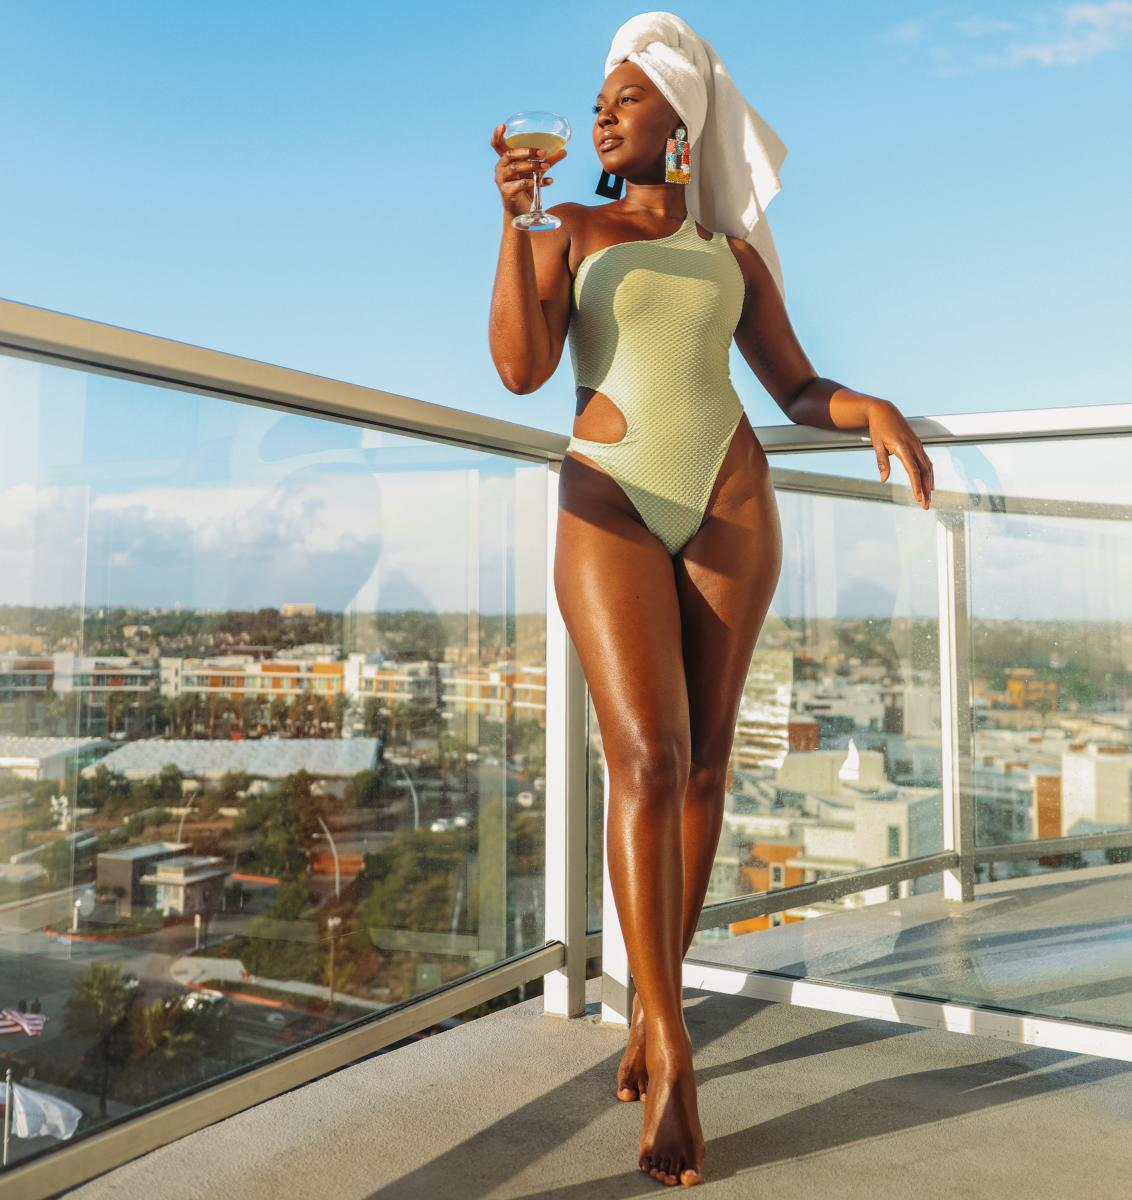 Swimsuit-clad woman enjoying a drink on a balcony at the Pasea Hotel & Spa in Huntington Beach